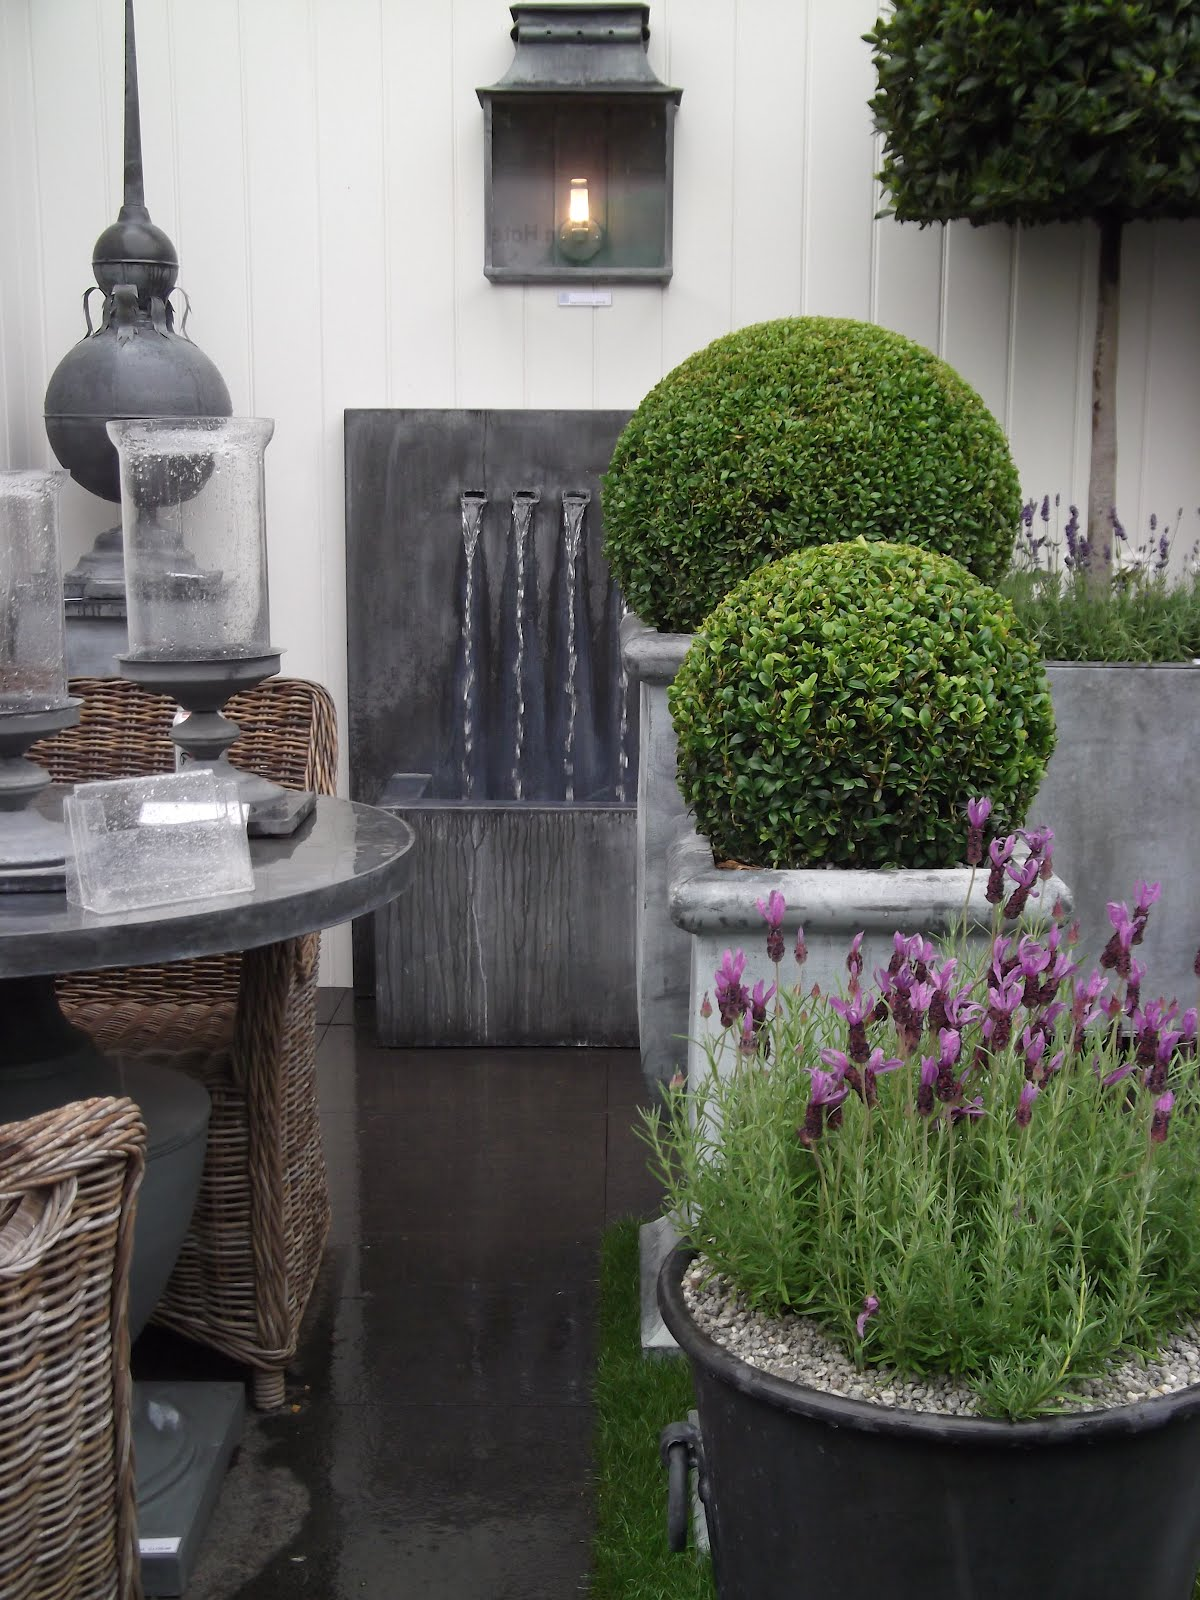 The hampton court flower show visit part 1 - Hampton court flower show ...